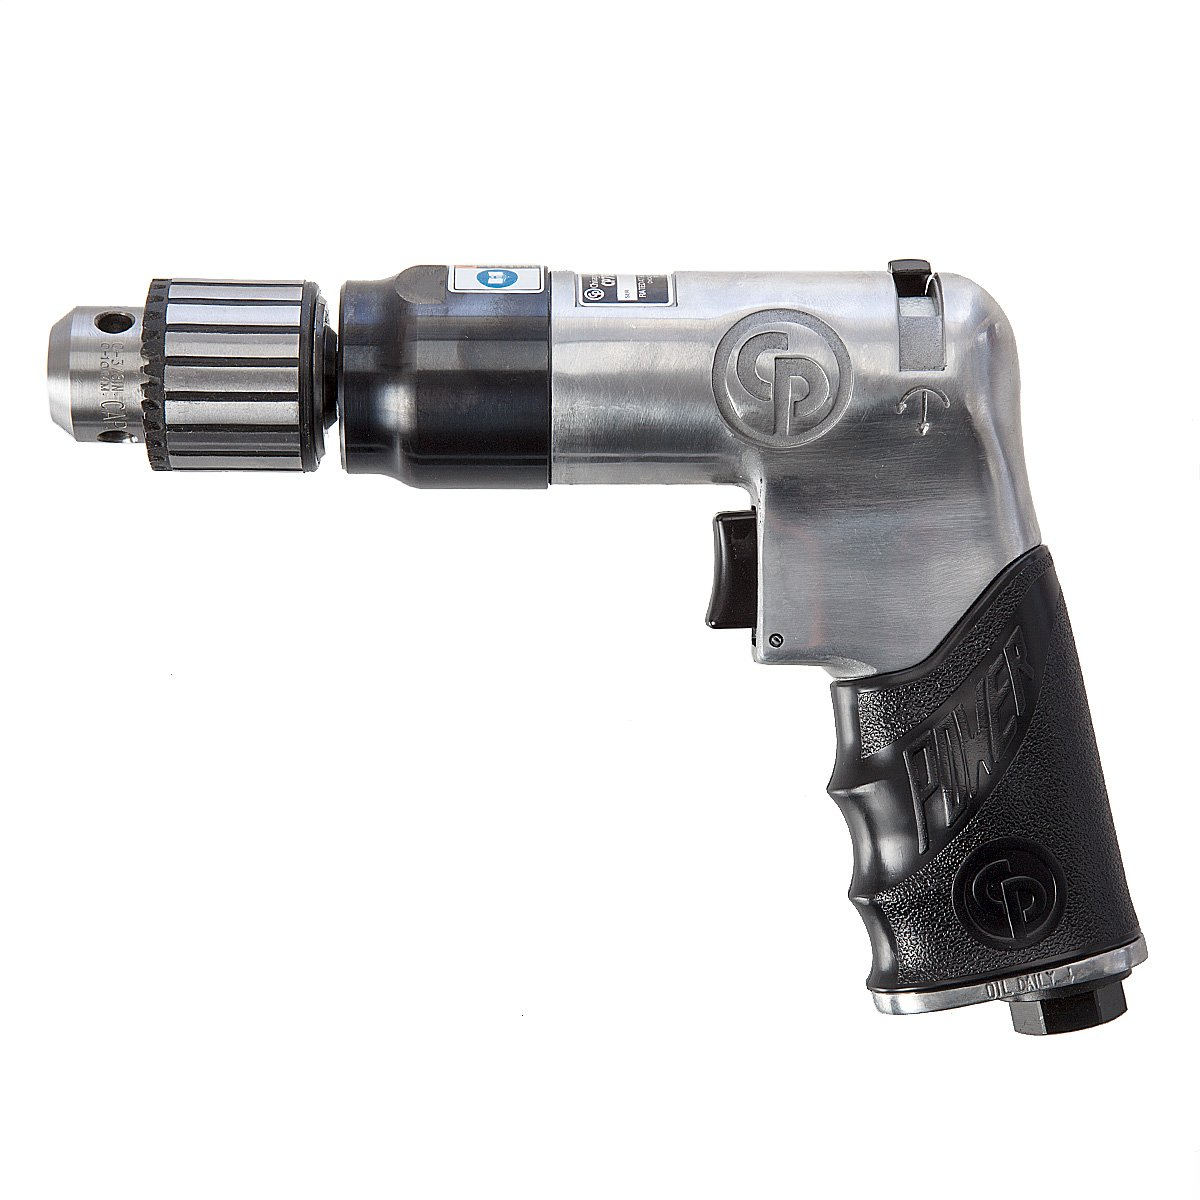 Chicago Pneumatic CP789R-26 3/8-Inch Super Duty Reversible Air Drill